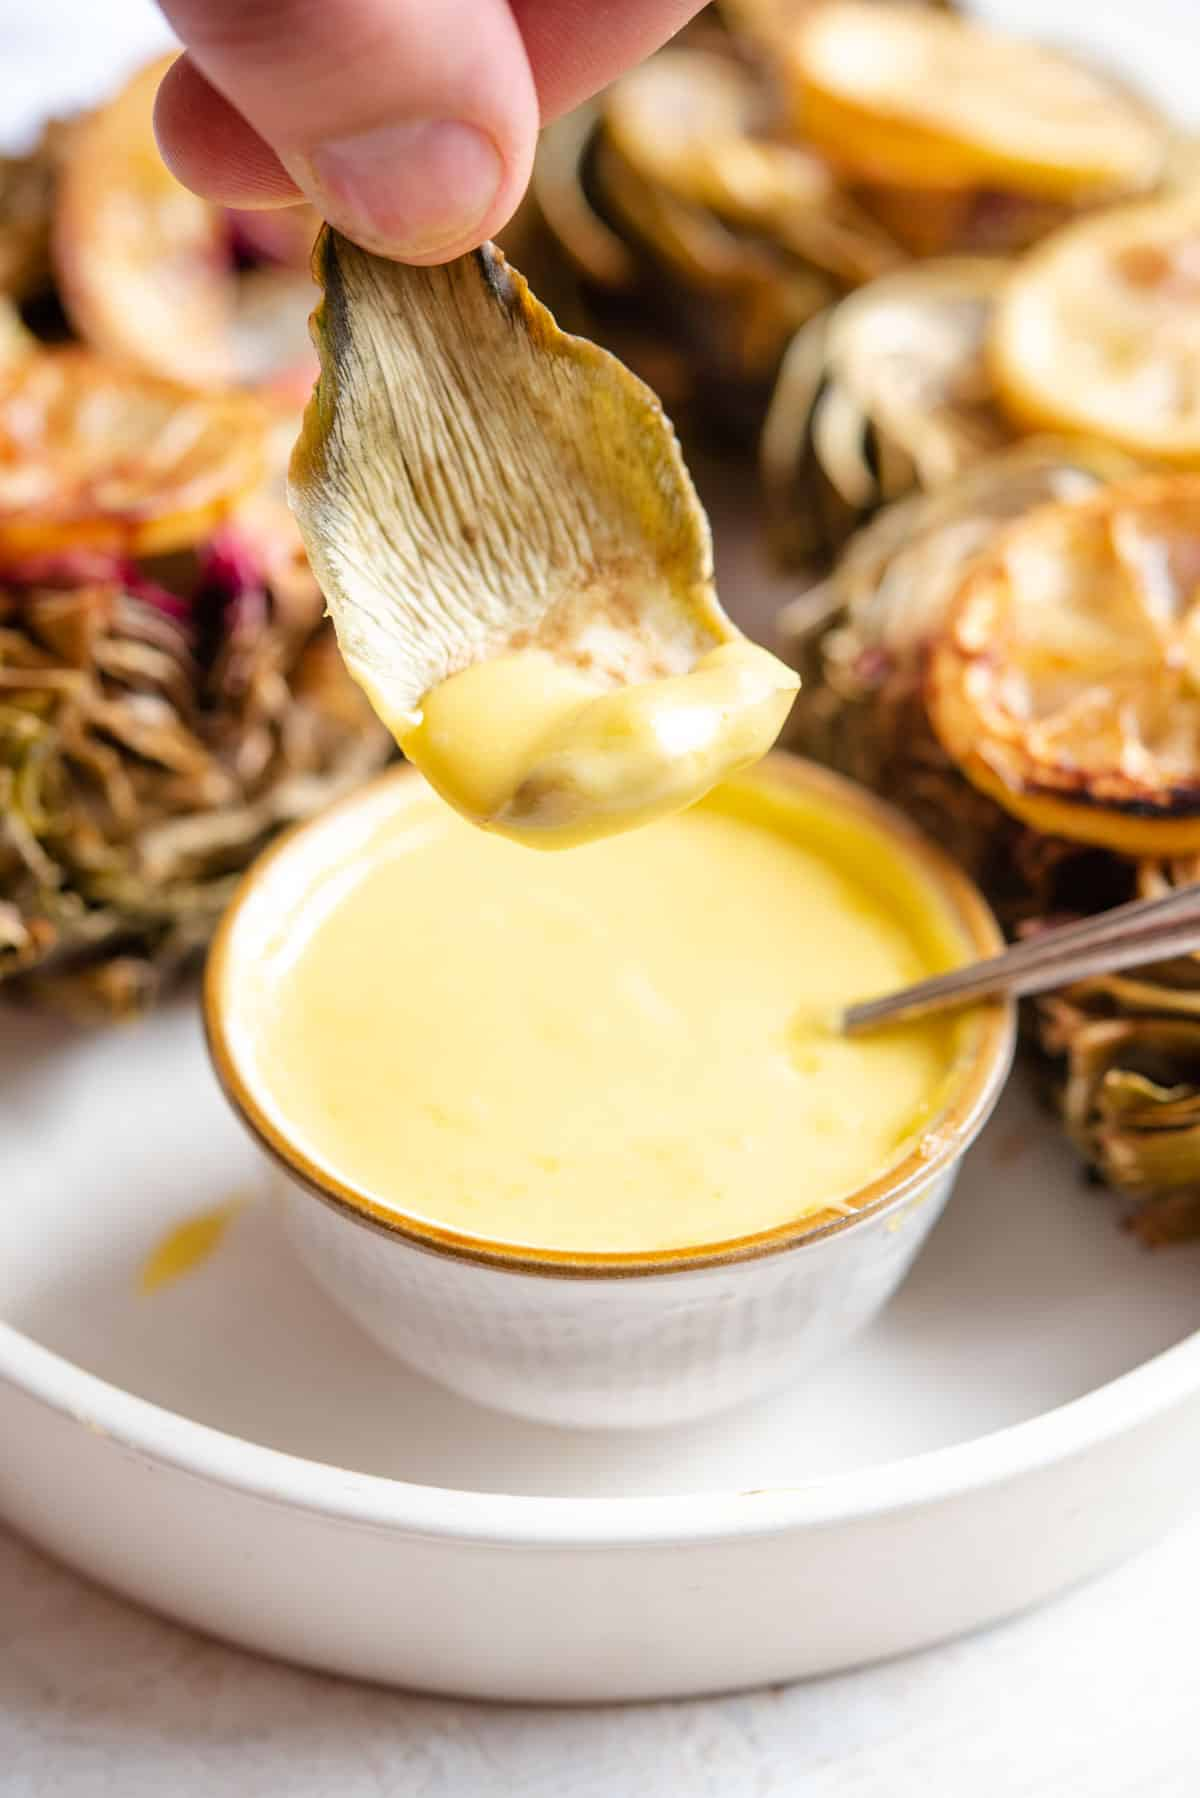 A close up of dipping an artichoke leave into aioli